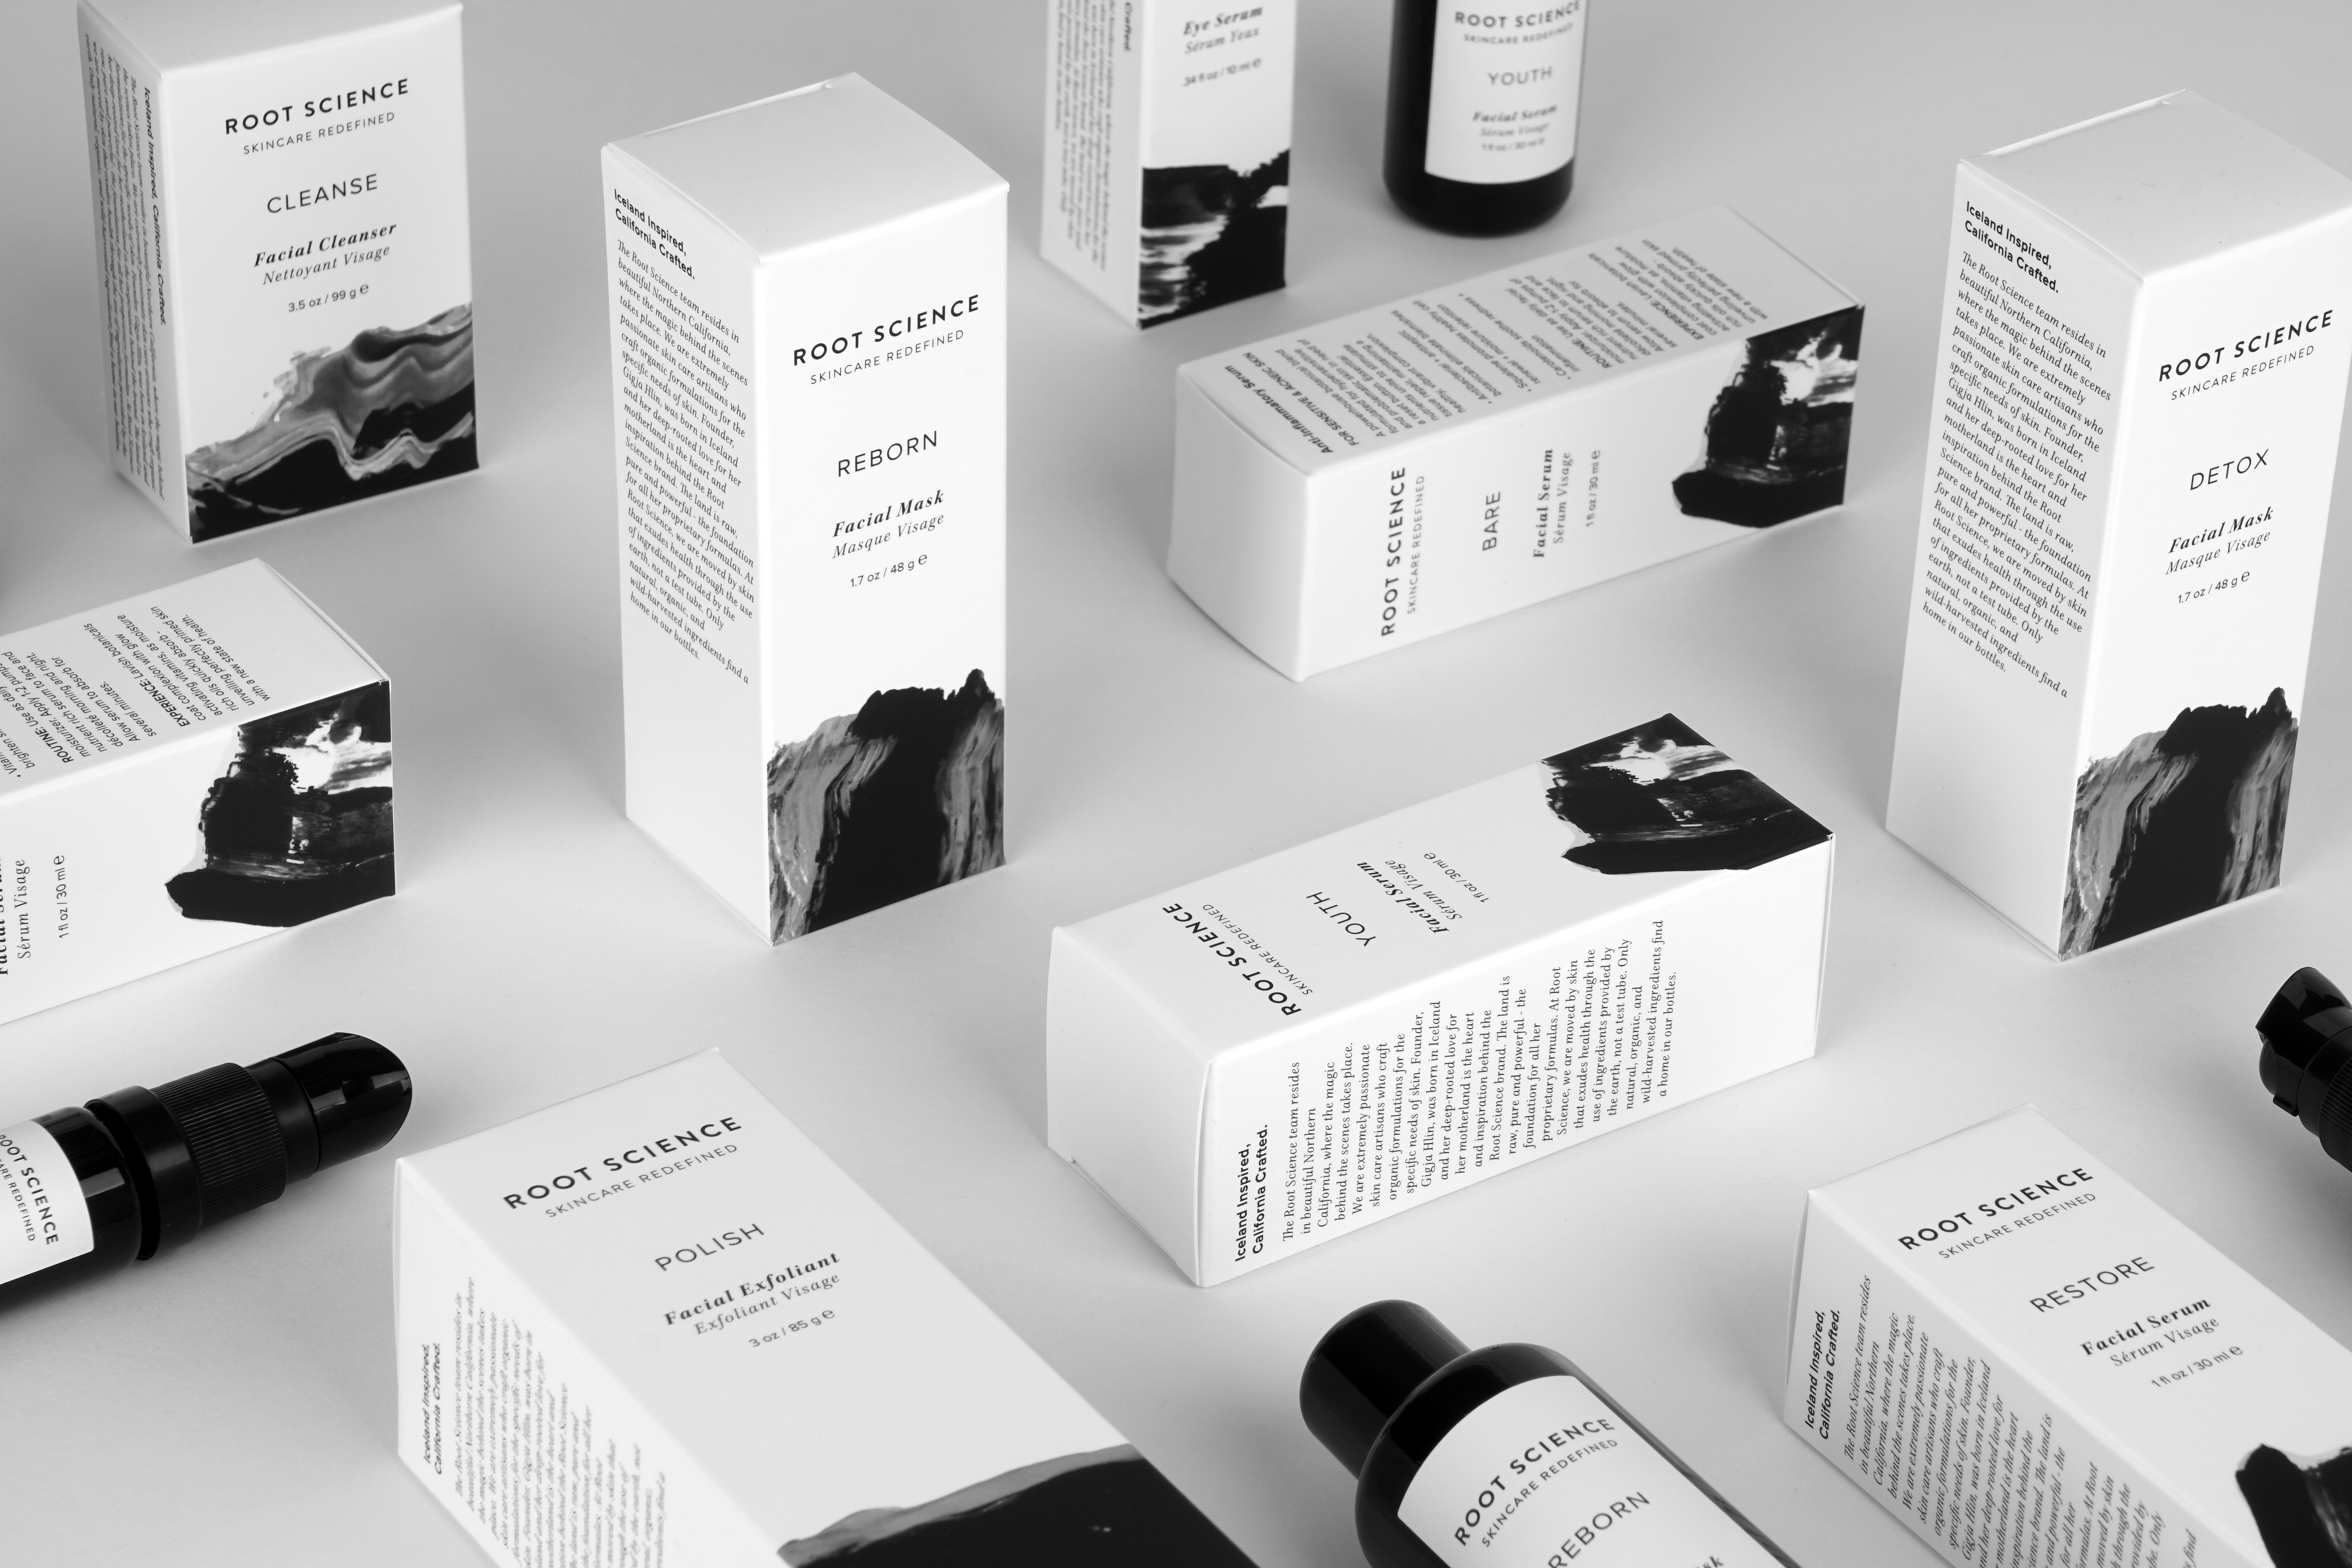 Root Science Skincare Products